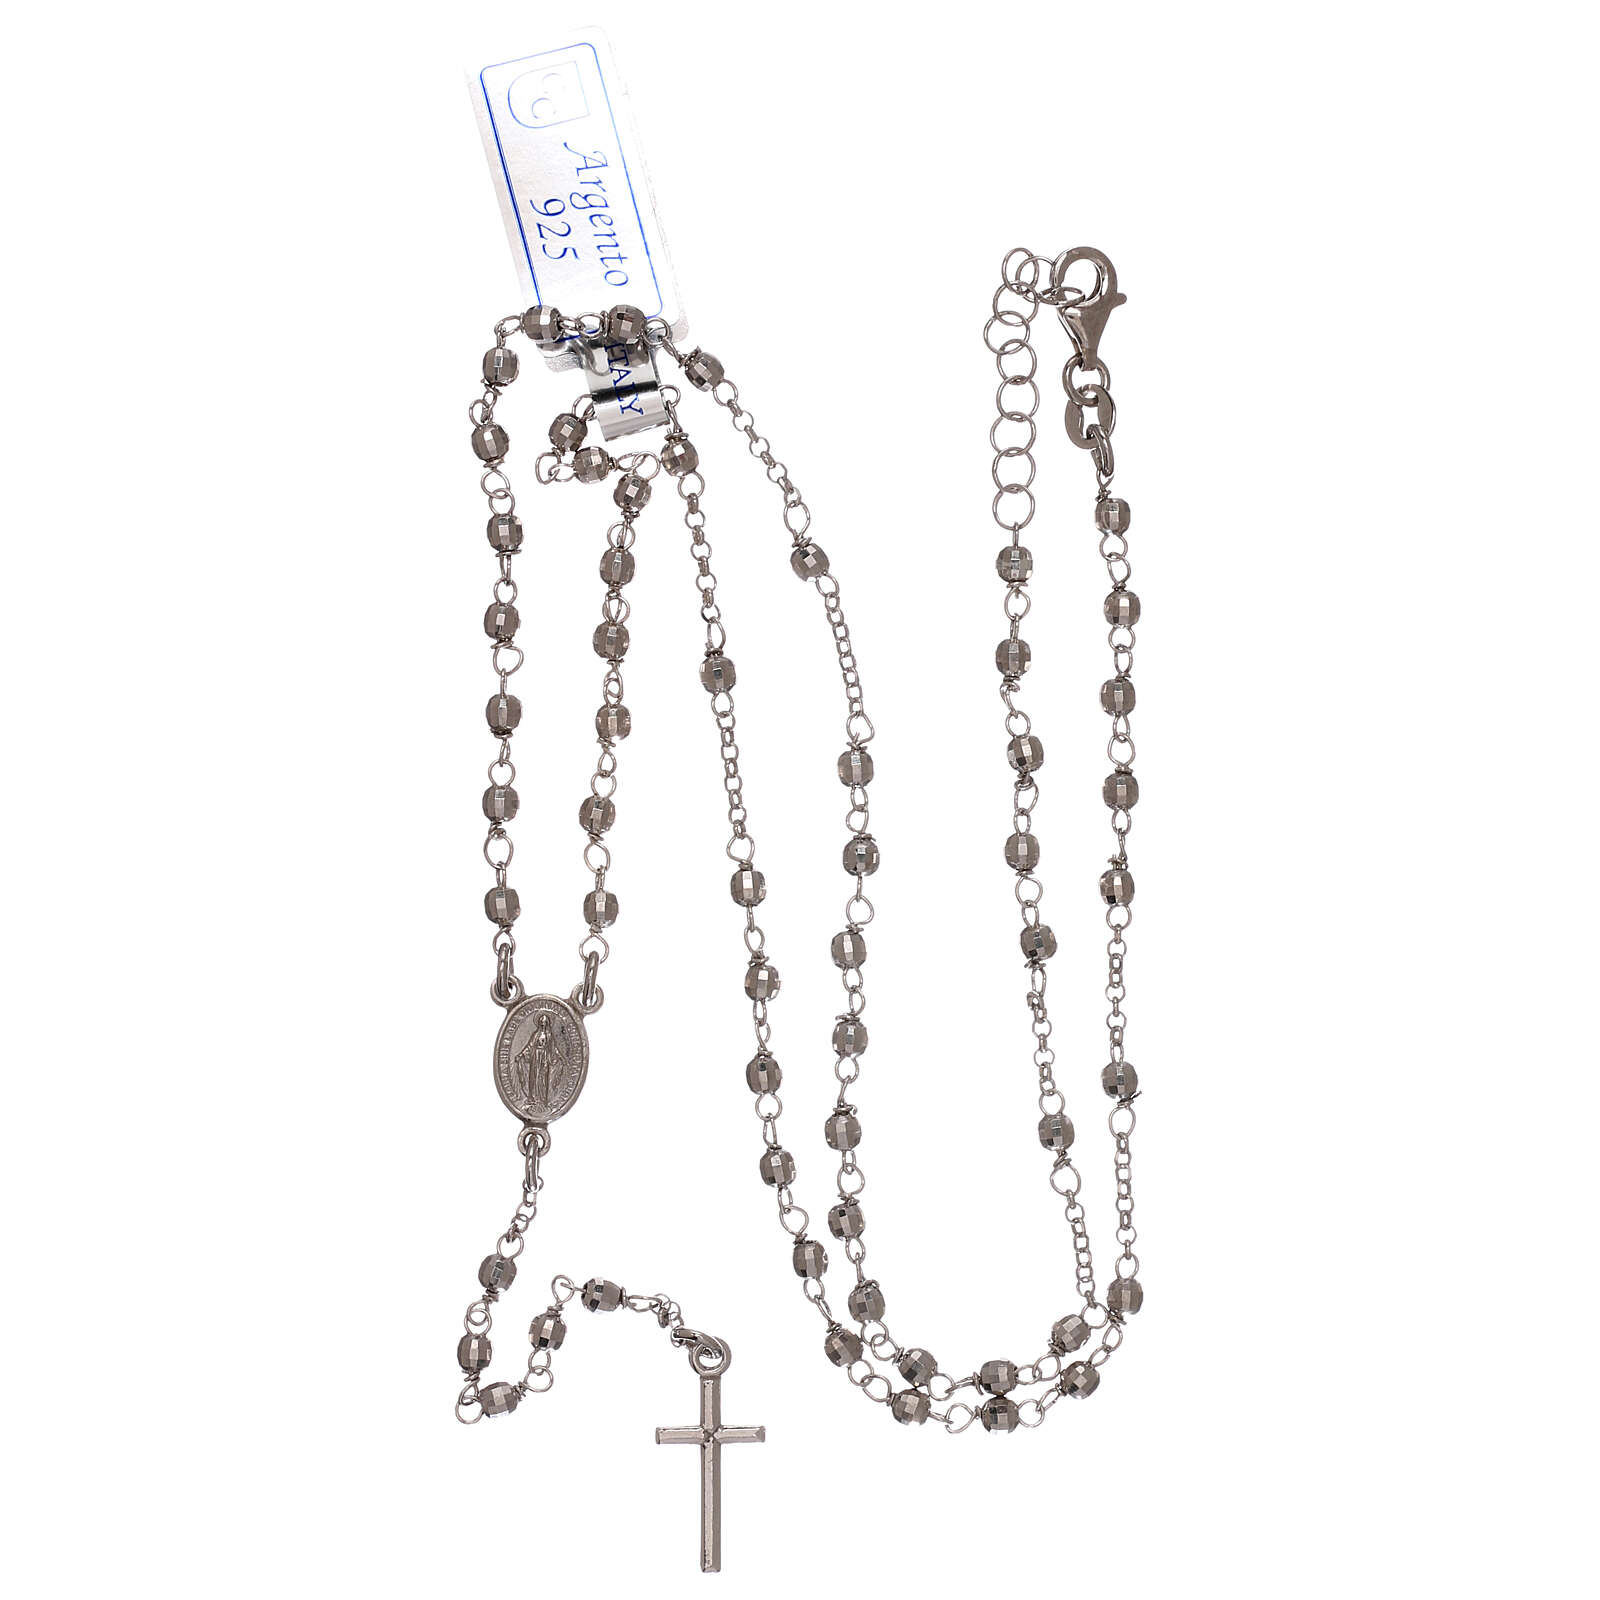 Rosary necklace 925 silver faceted beads 1 mm 4